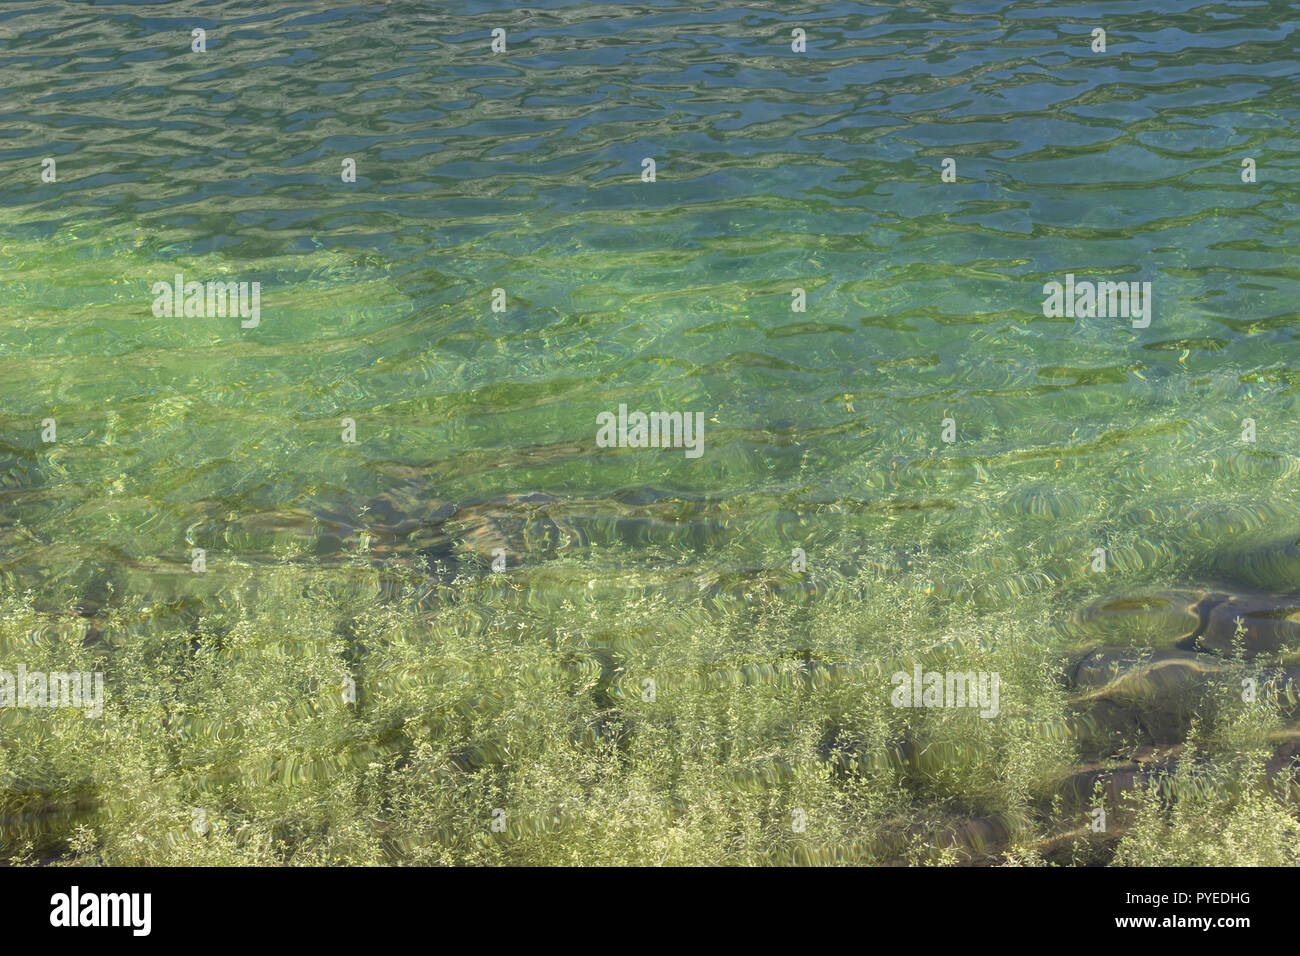 Monochromatic green background of an alpine lake with aquatic plant. - Stock Image